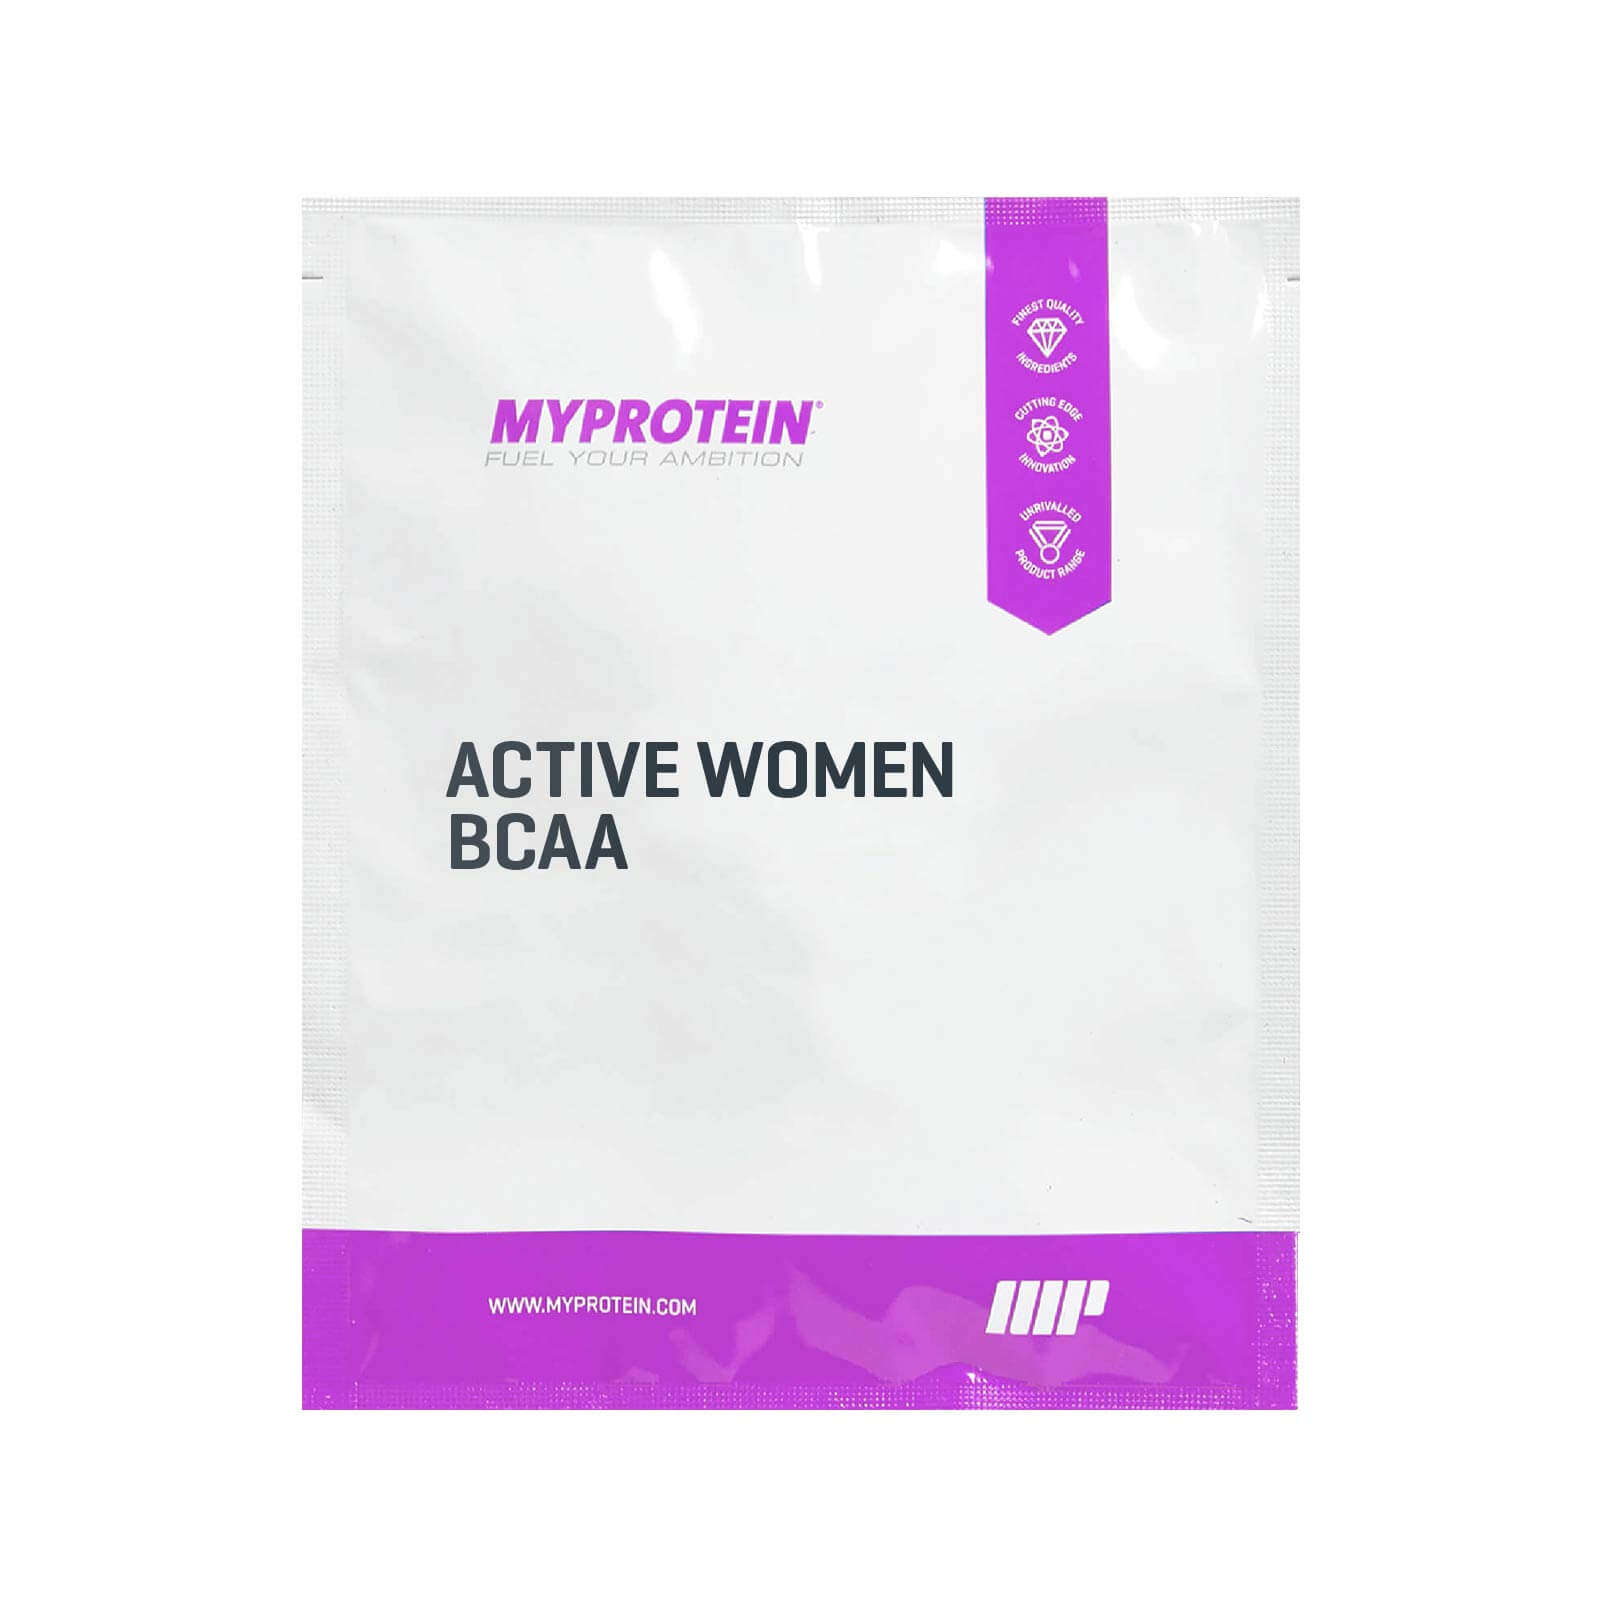 Active Women BCAA (Sample)